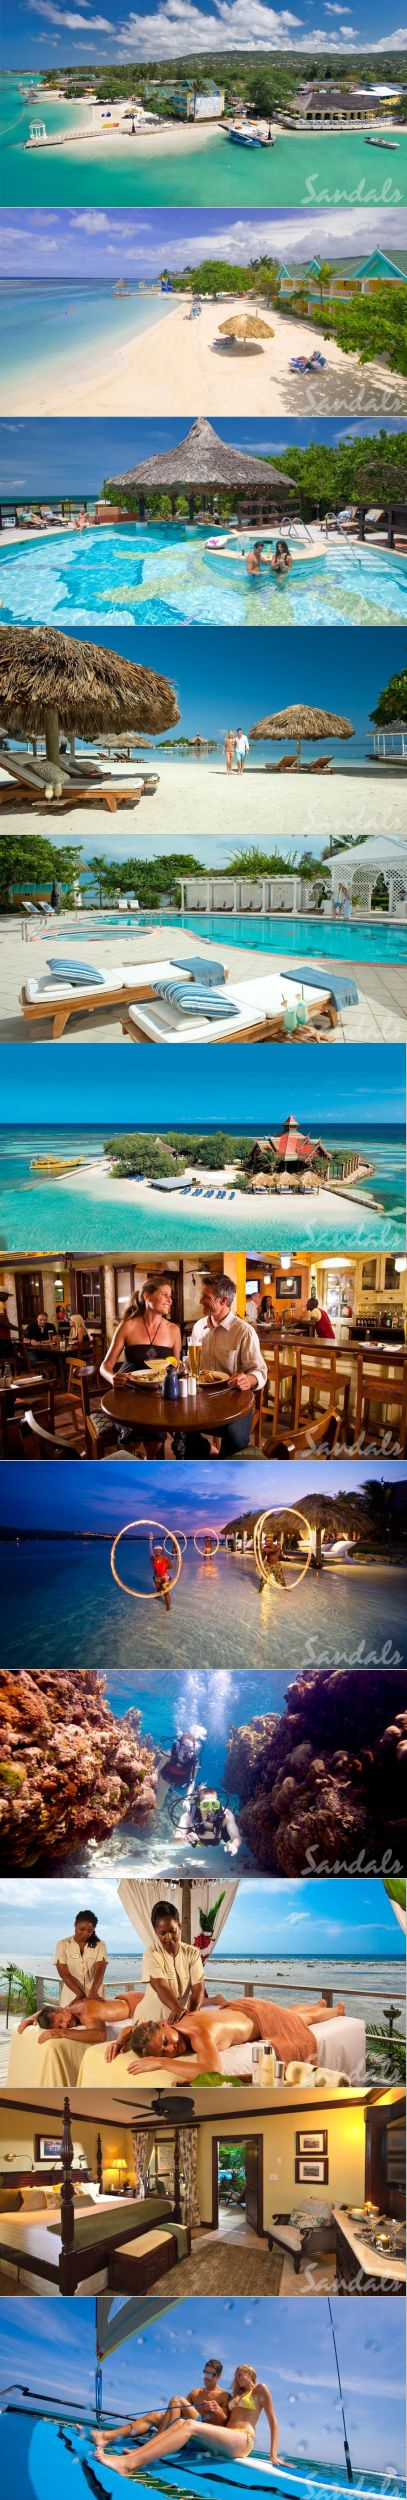 The Top Carribean All Inclusive Resorts For Couples: Sandals Royal Caribbean Review